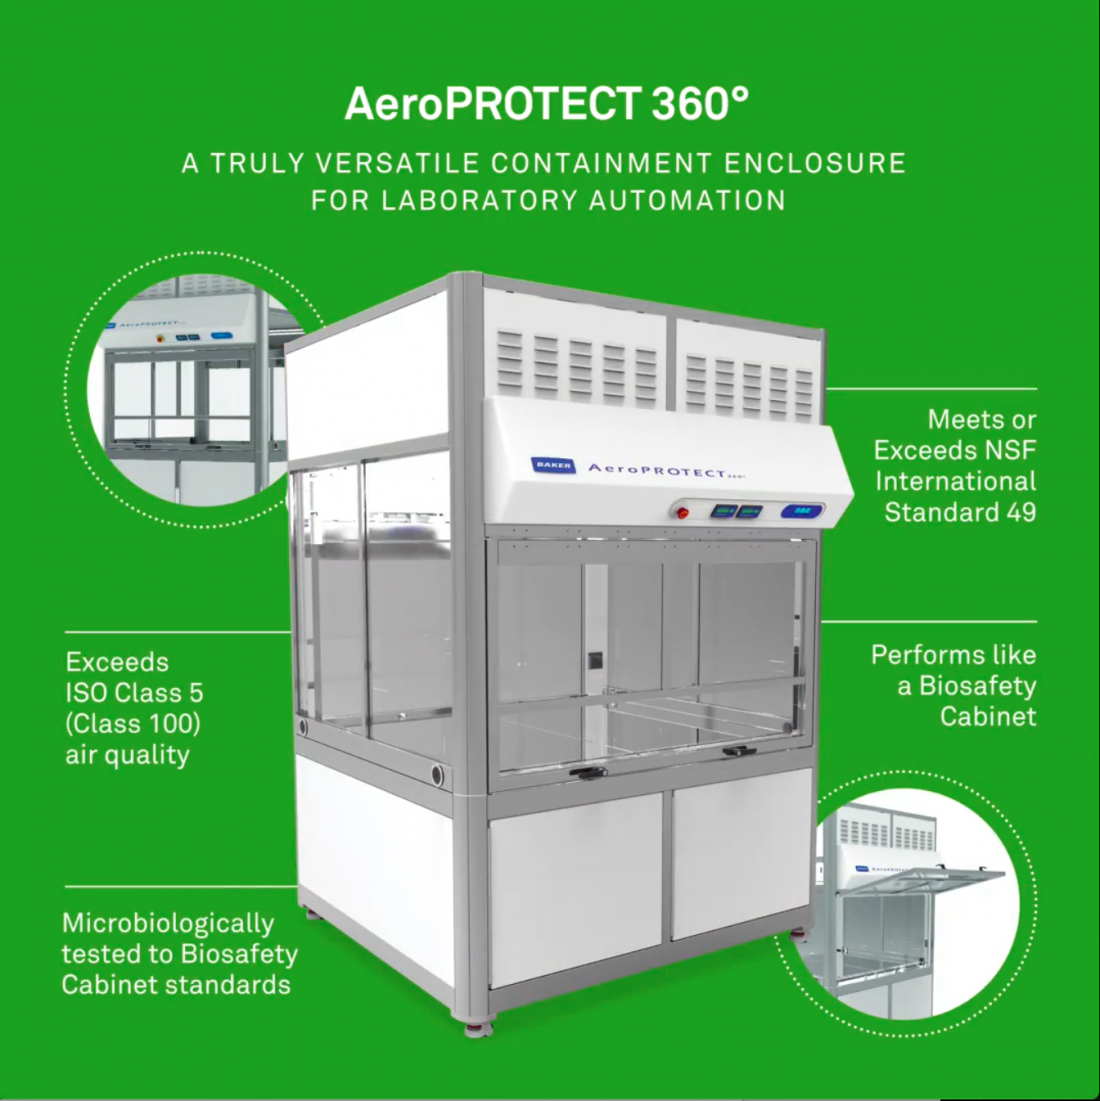 Lab Automation & AeroPROTECT<sup>®</sup>